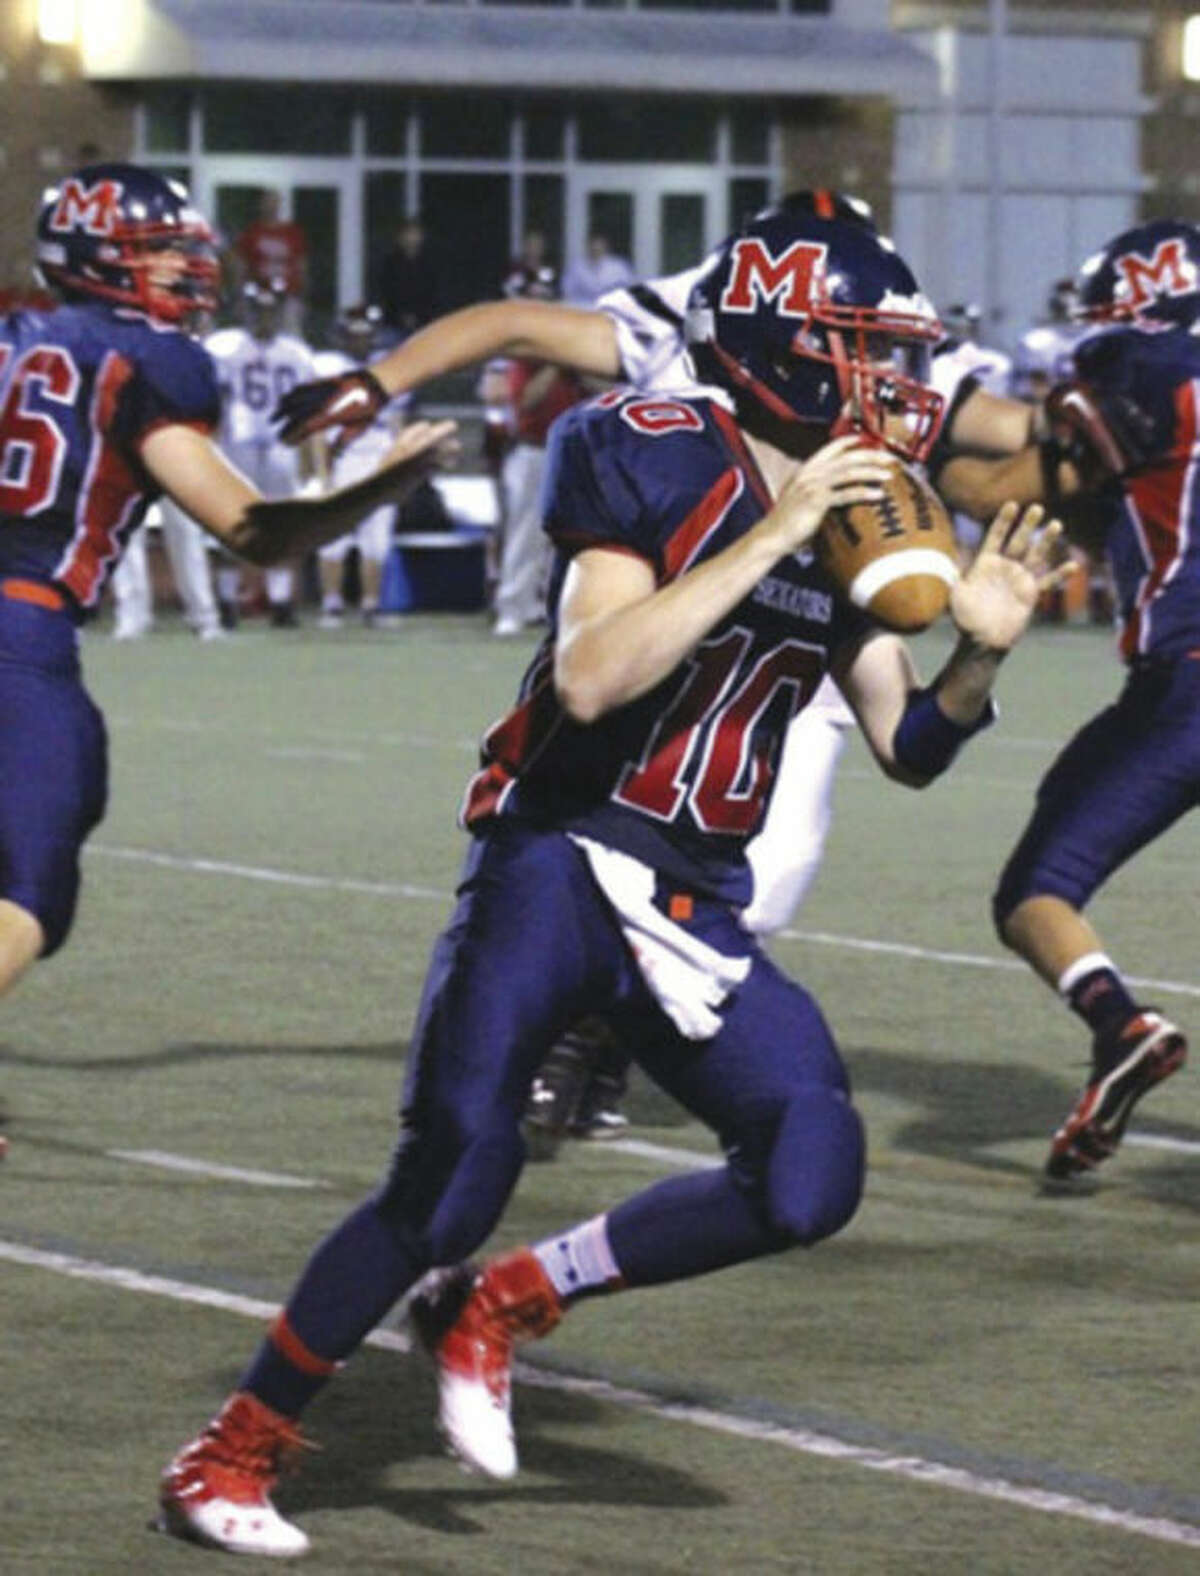 Contributed photo Former Brien McMahon quarterback Trey Newcomb looks for a receiver during a 2012 game. Newcomb was forced to give up football after suffering a serious injury during a game but is adapting nicely.